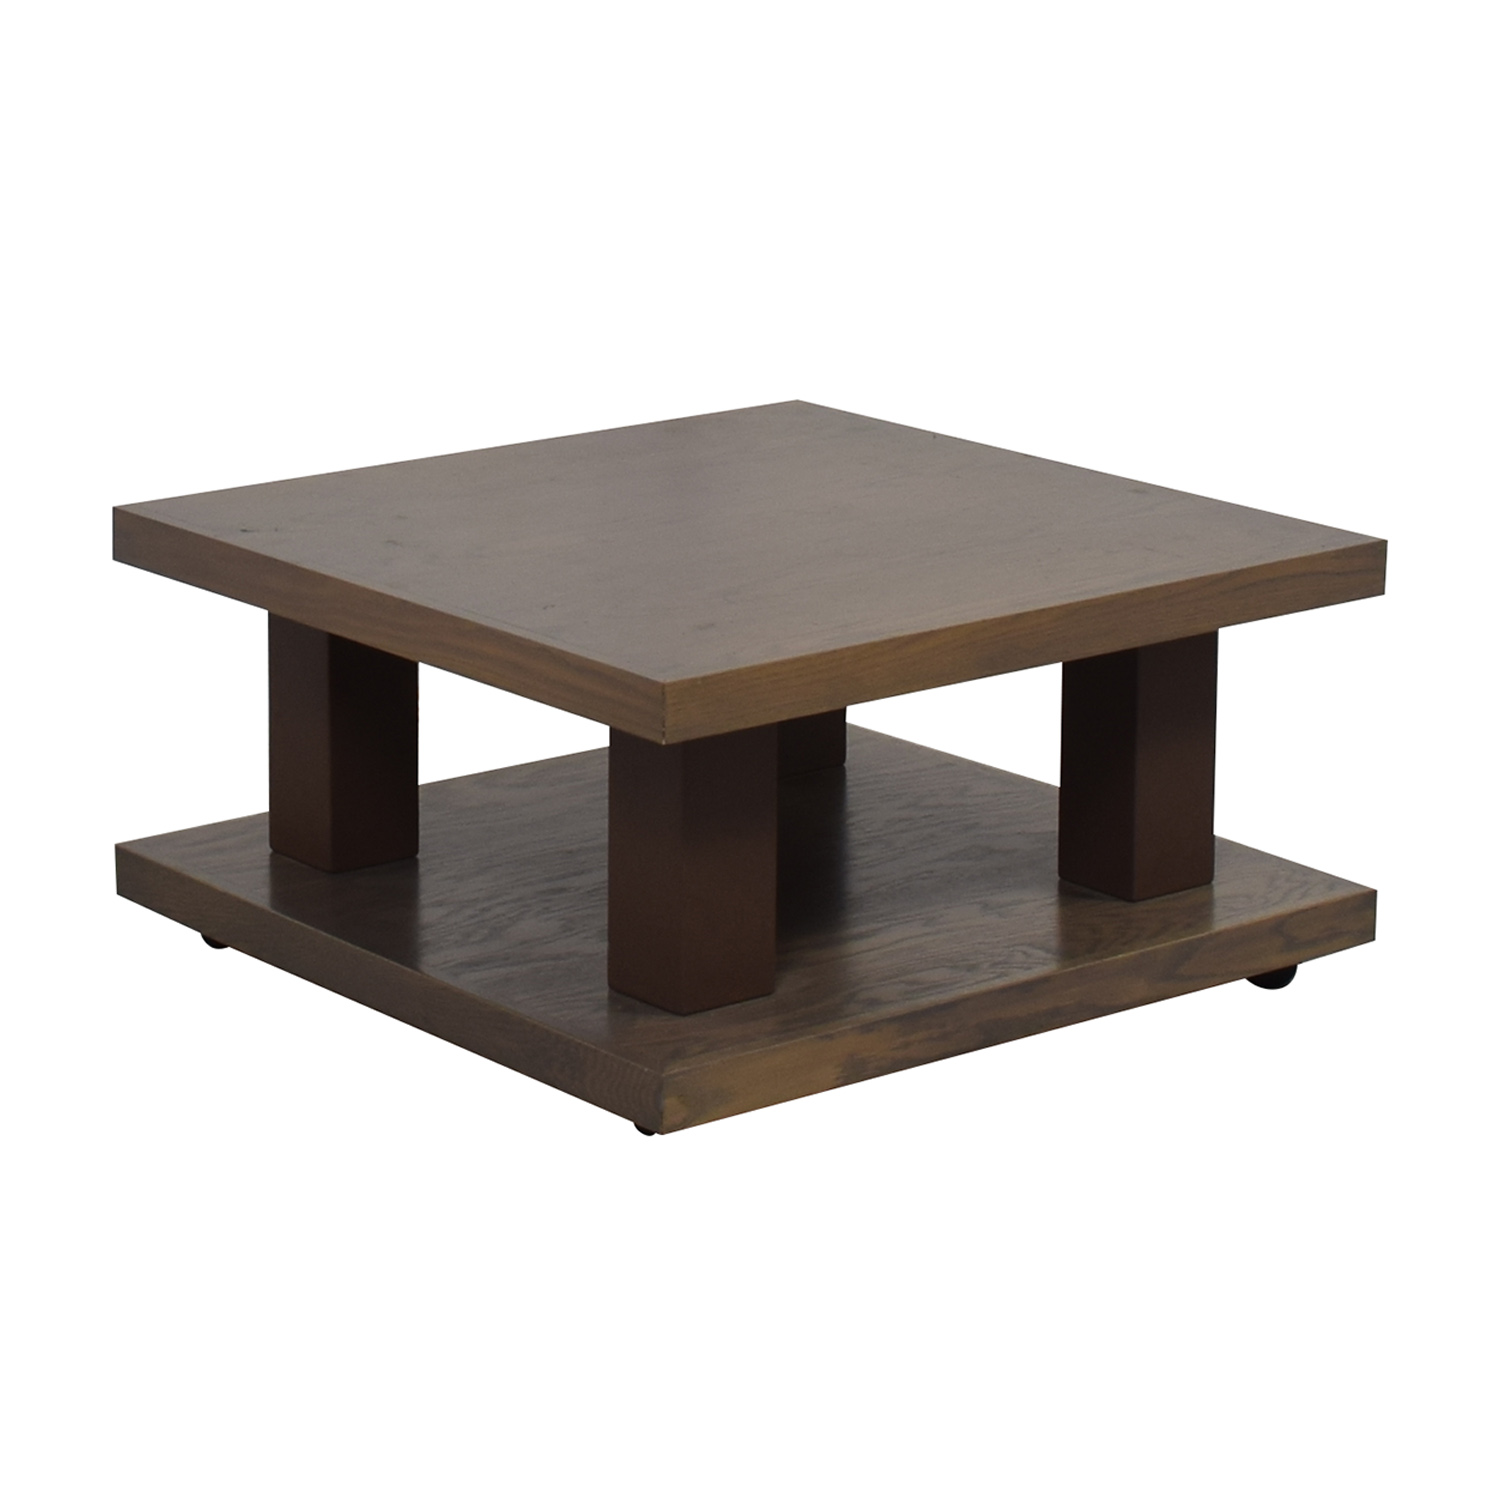 aspenhome Grey Driftwood Square Coffee Table On Wheels / Coffee Tables